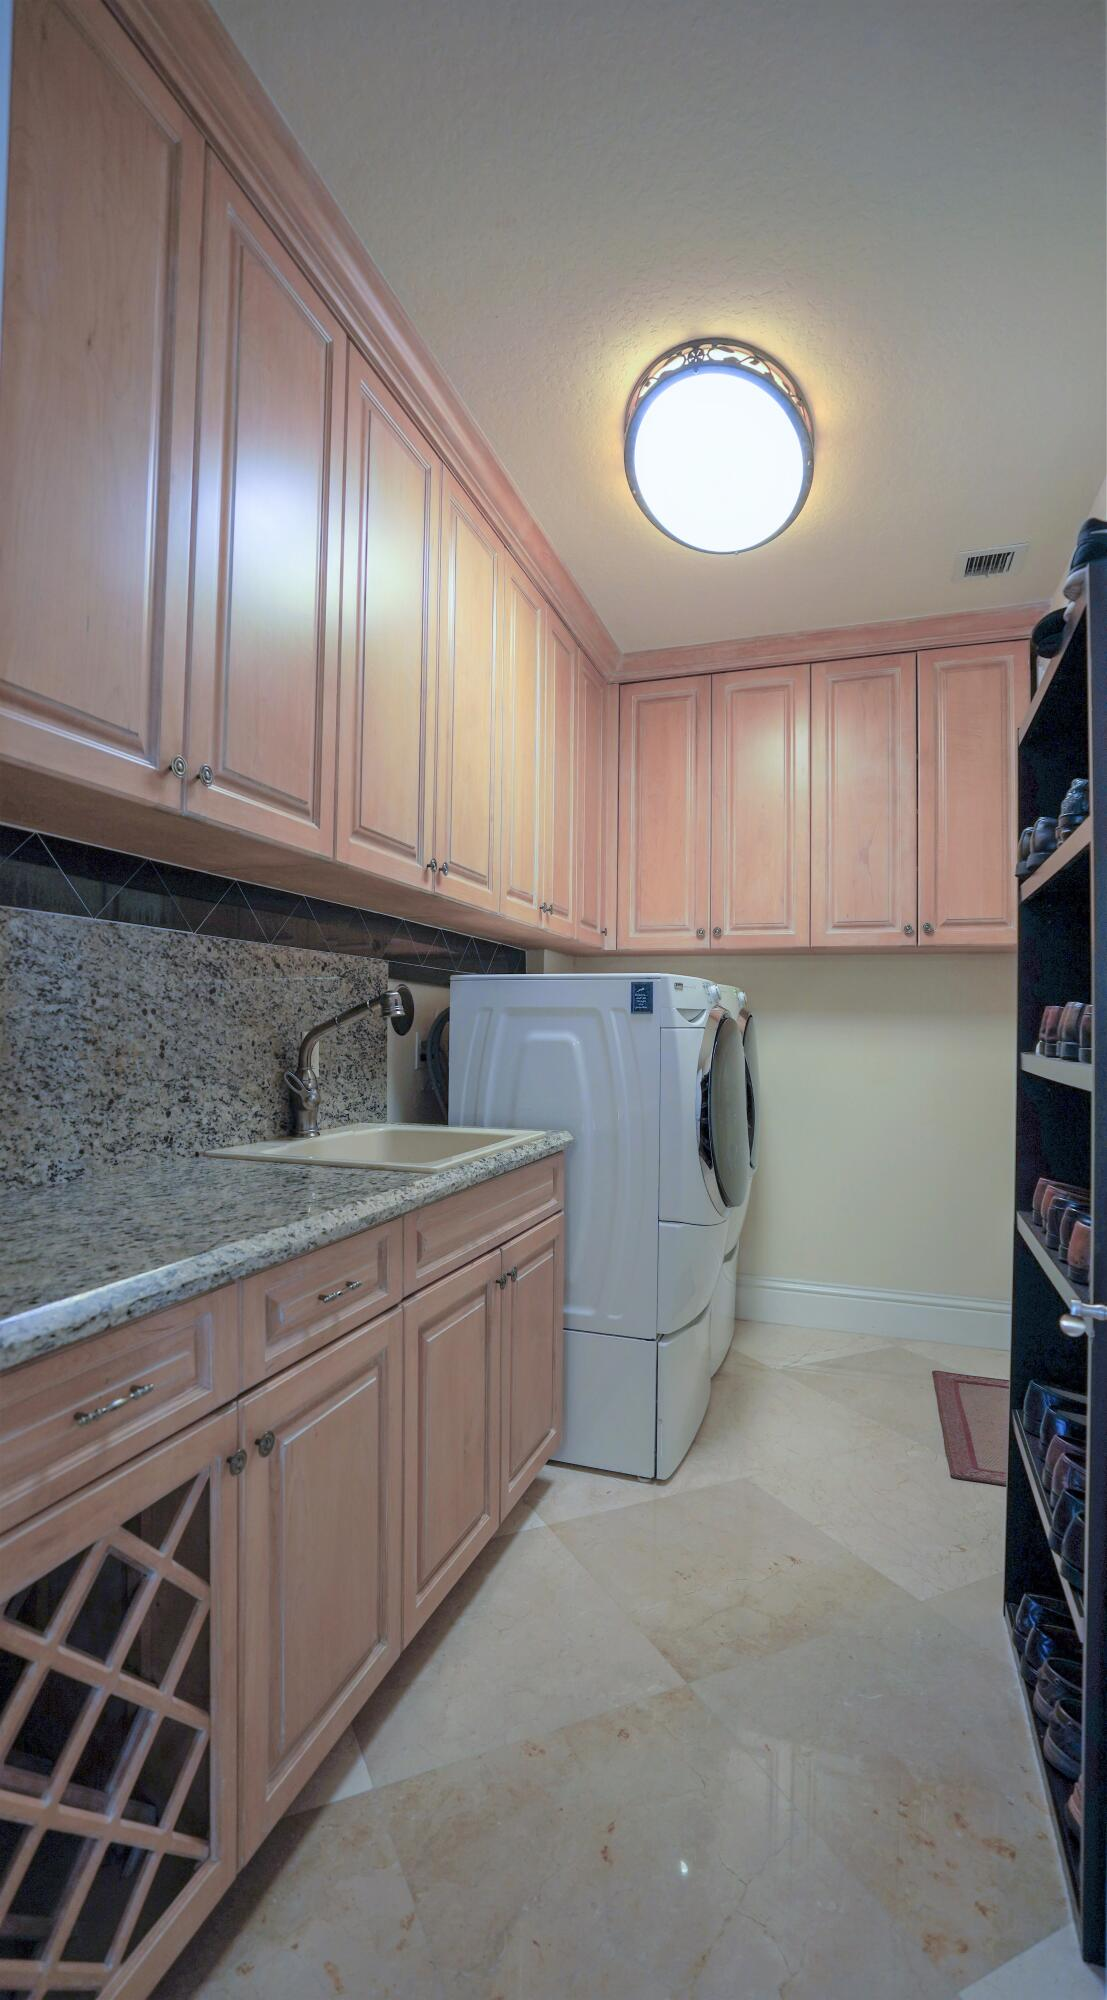 Laundry Room/Safe Room